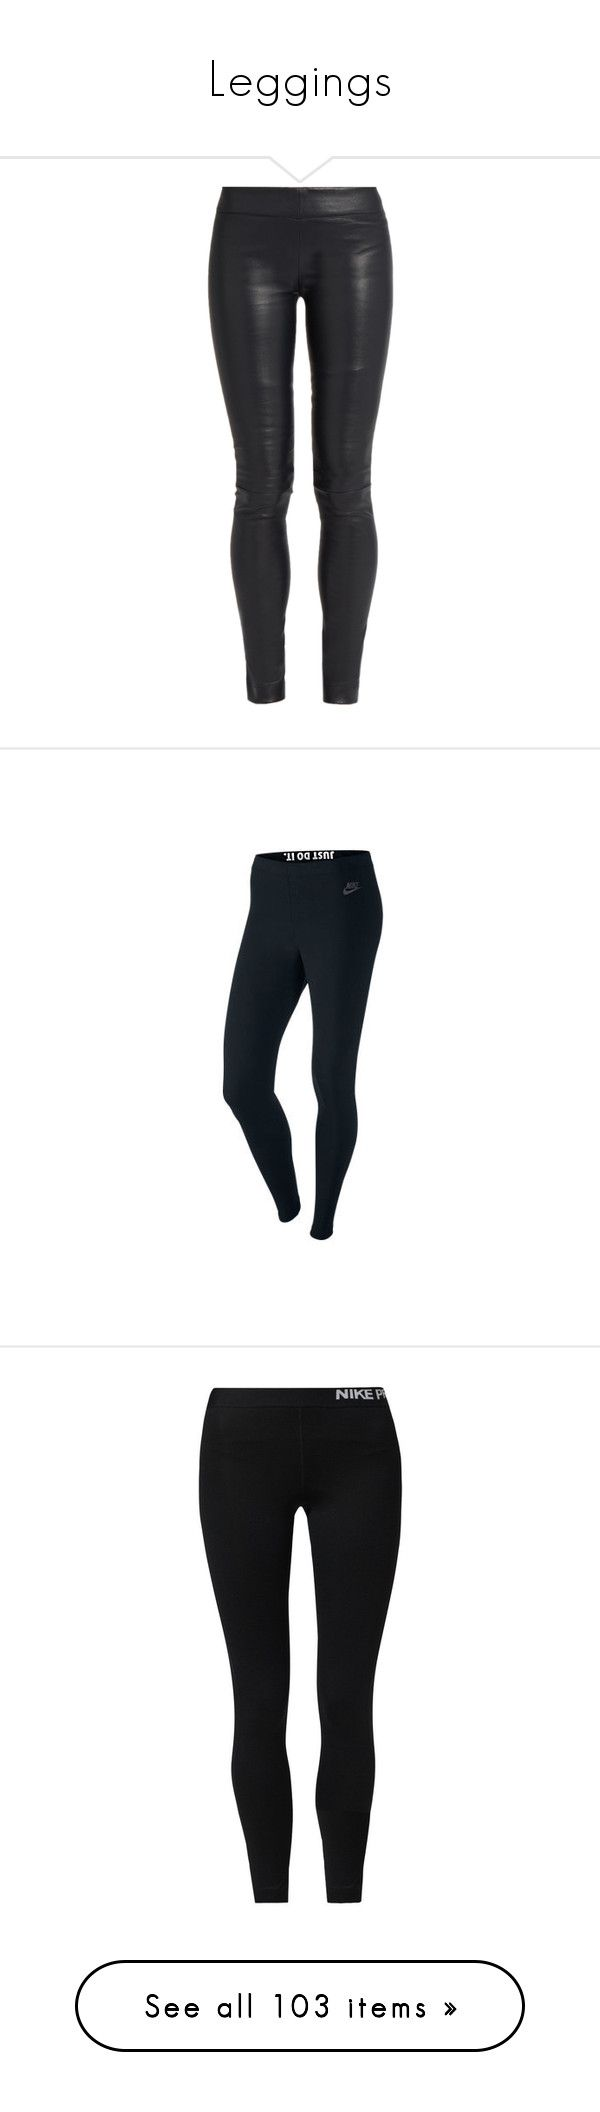 """Leggings"" by elephant10 ❤ liked on Polyvore featuring pants, leggings, bottoms, jeans, navy, navy blue skinny pants, elastic waist pants, skinny leather pants, stretch leather leggings and stretch leggings"